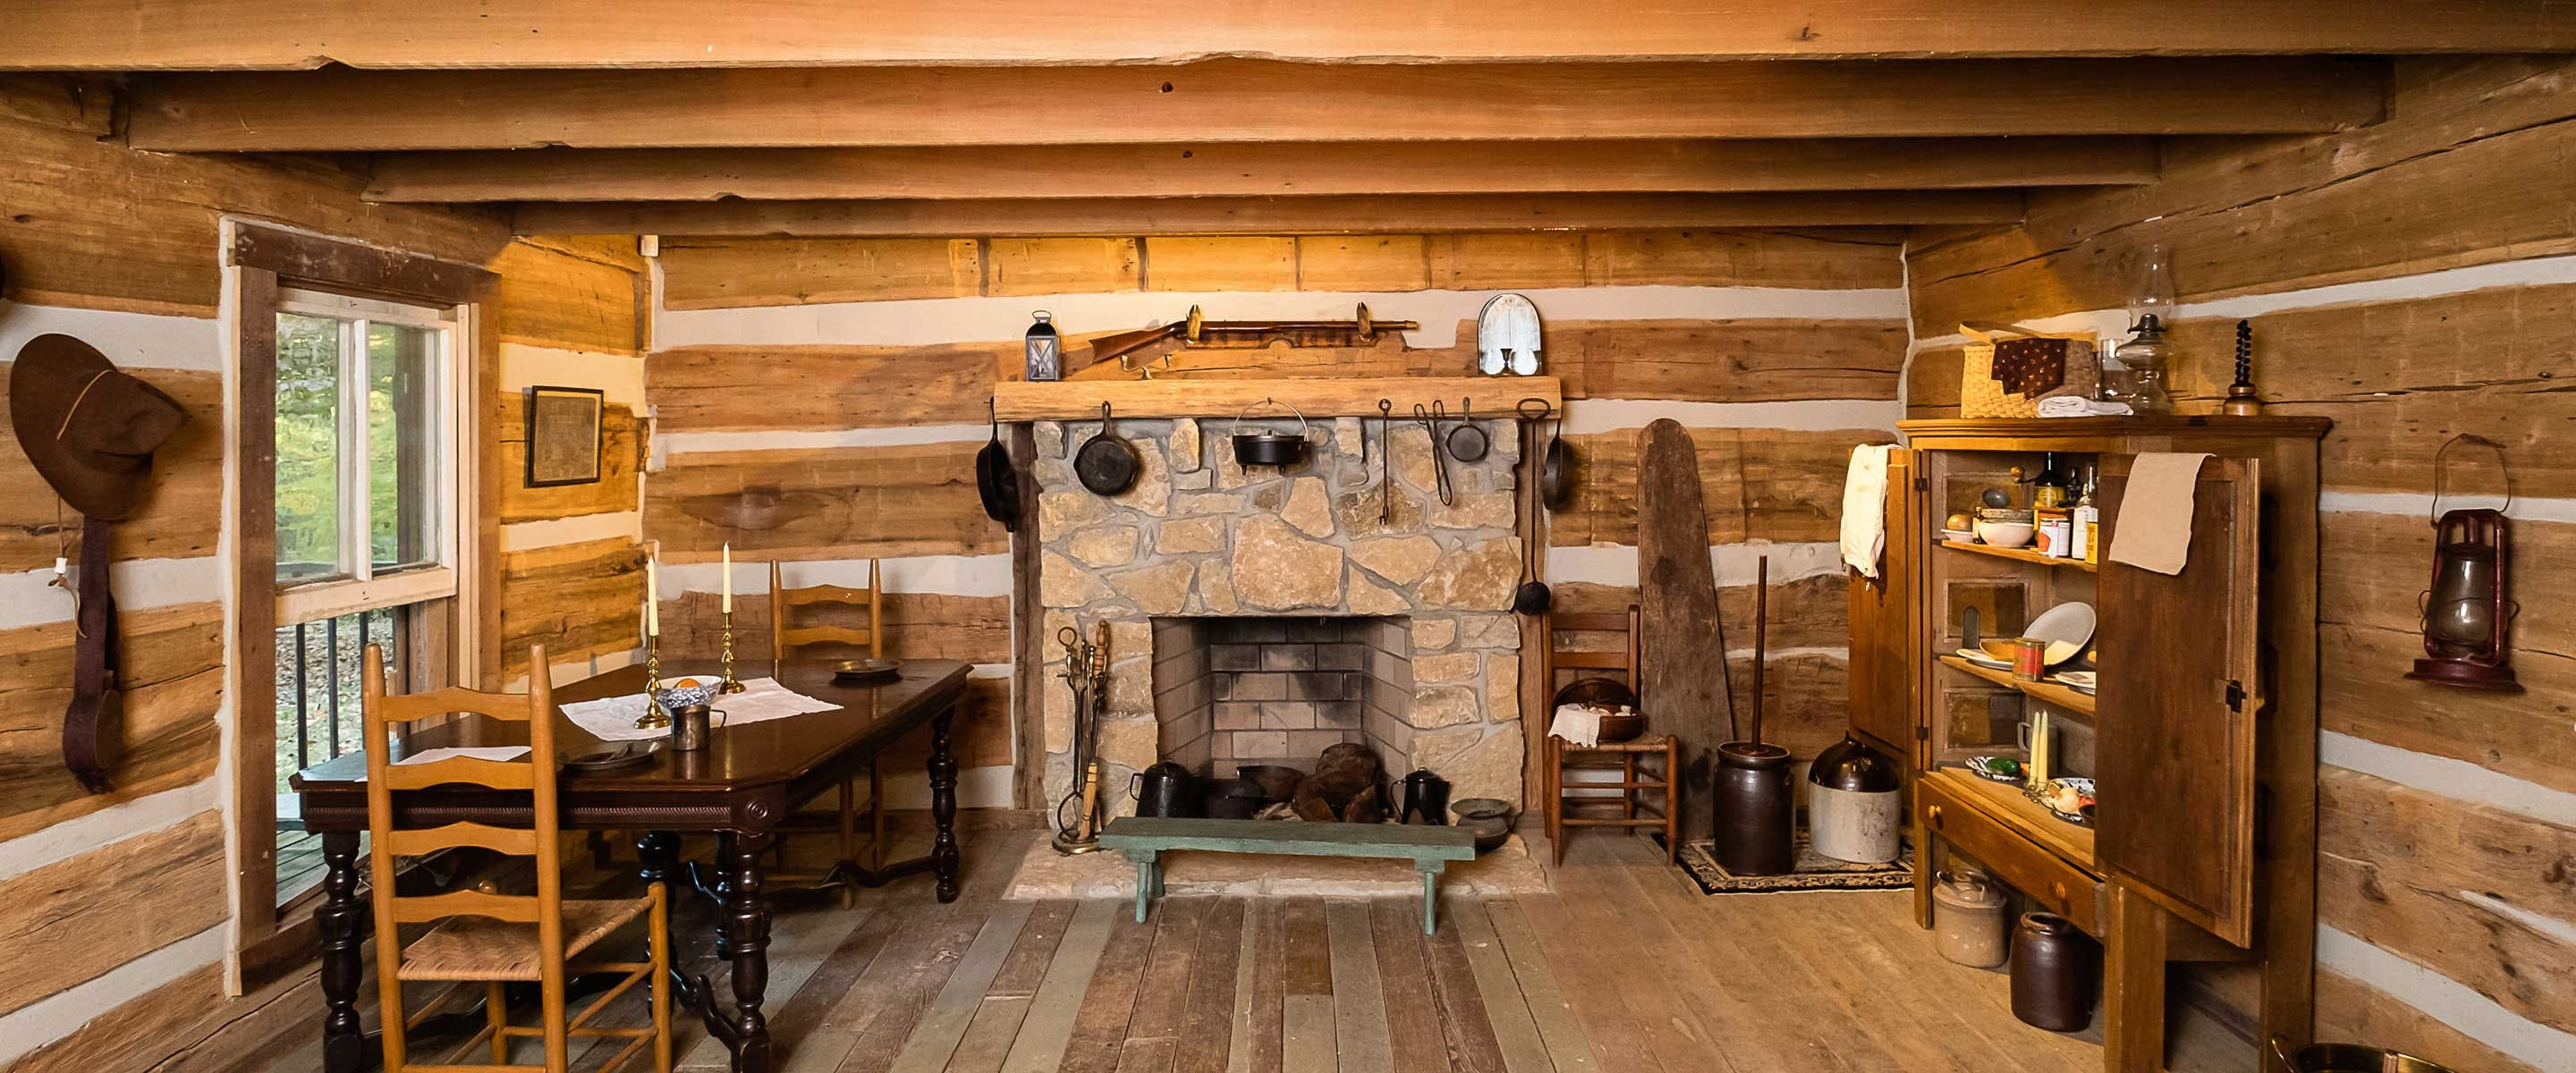 interior view of cabin just as it would have been pre-civil war